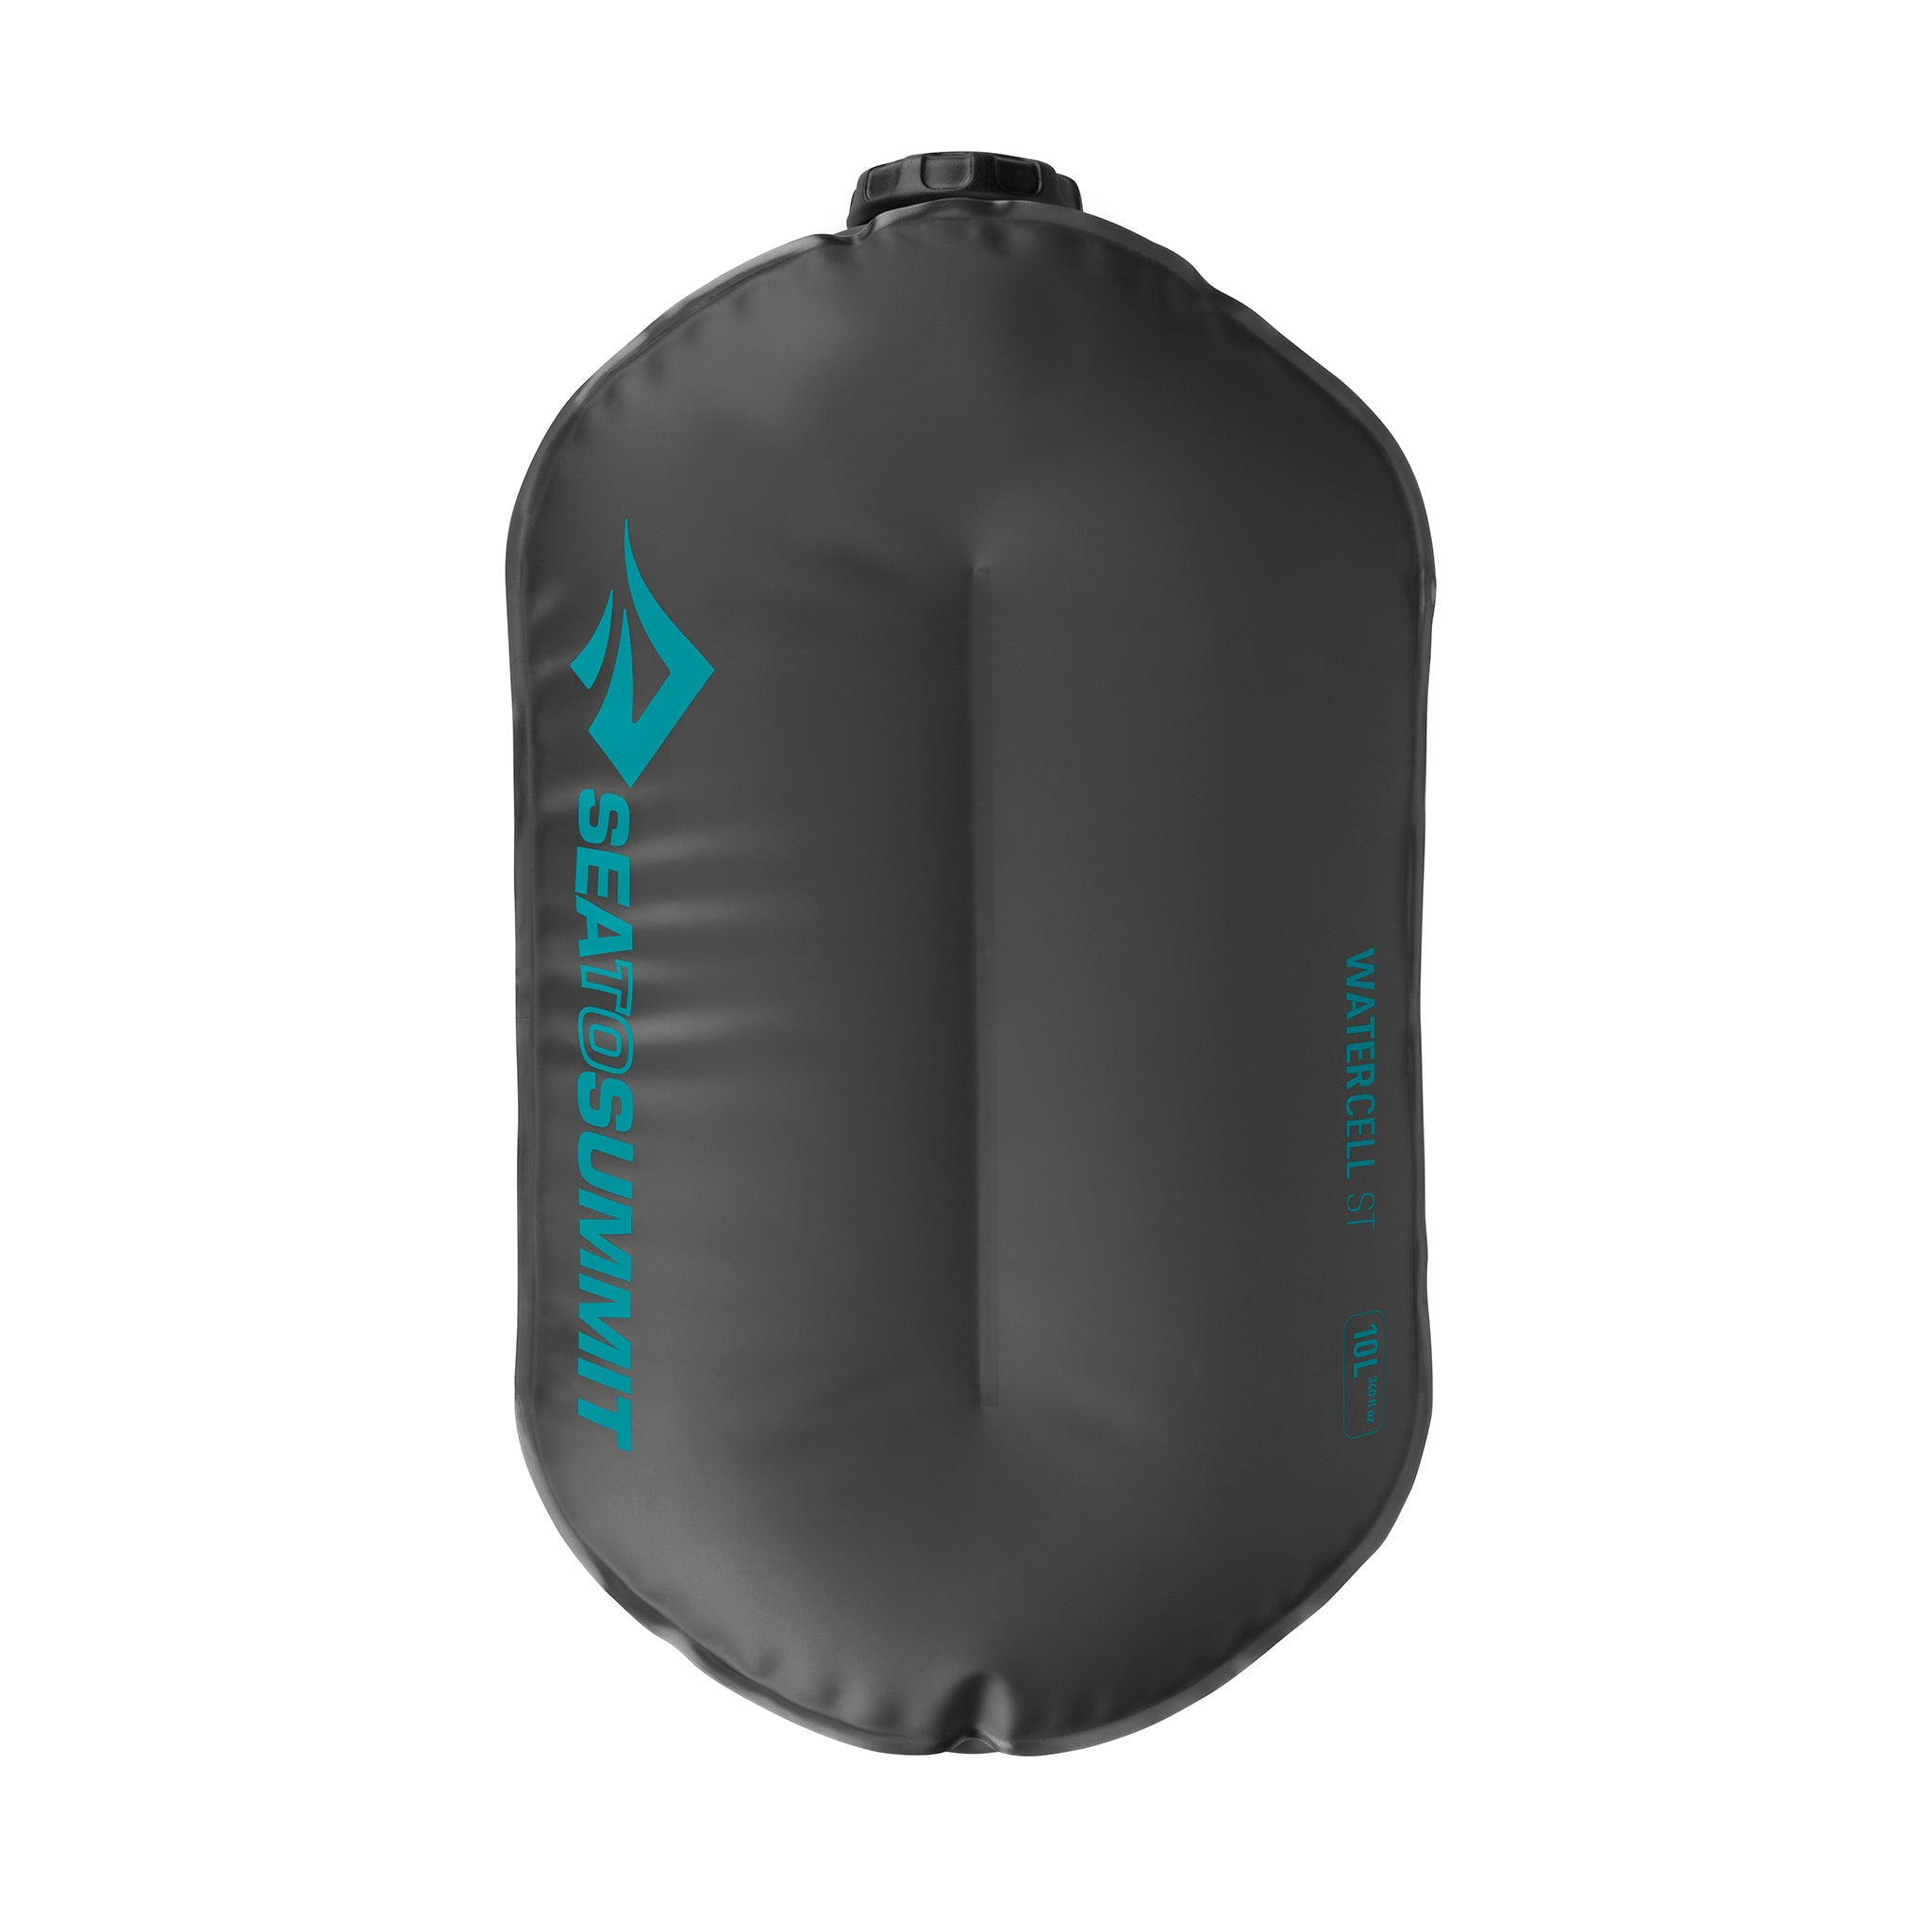 Wartercell ST _ 10L reservoir water bag for backpacking